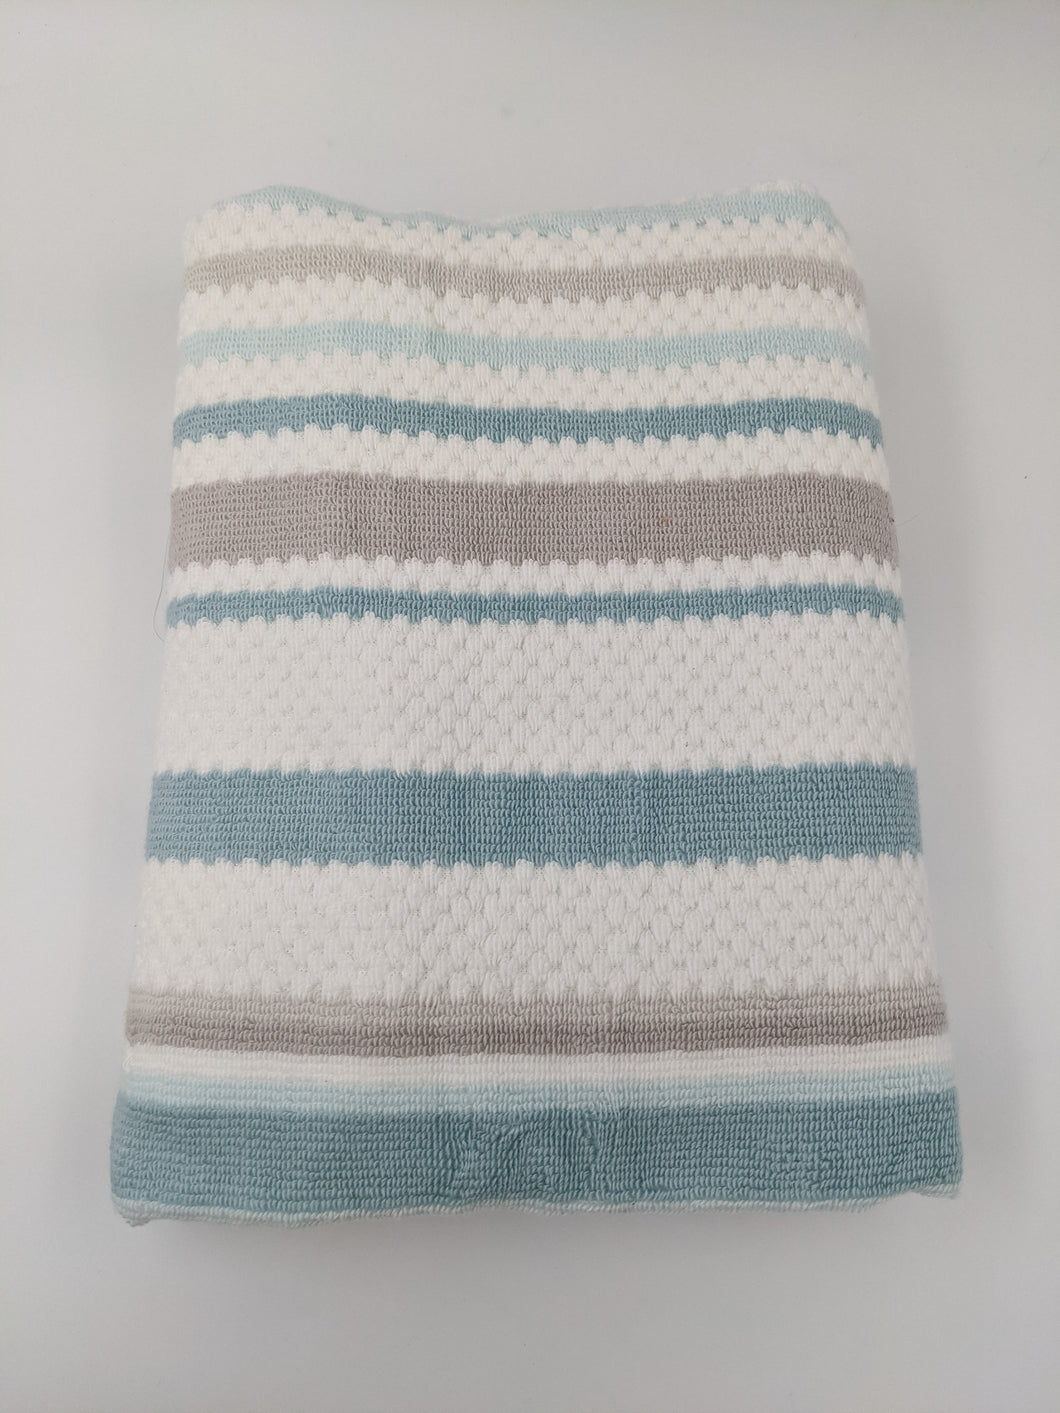 Hooded Towel - Seafoam Stripes